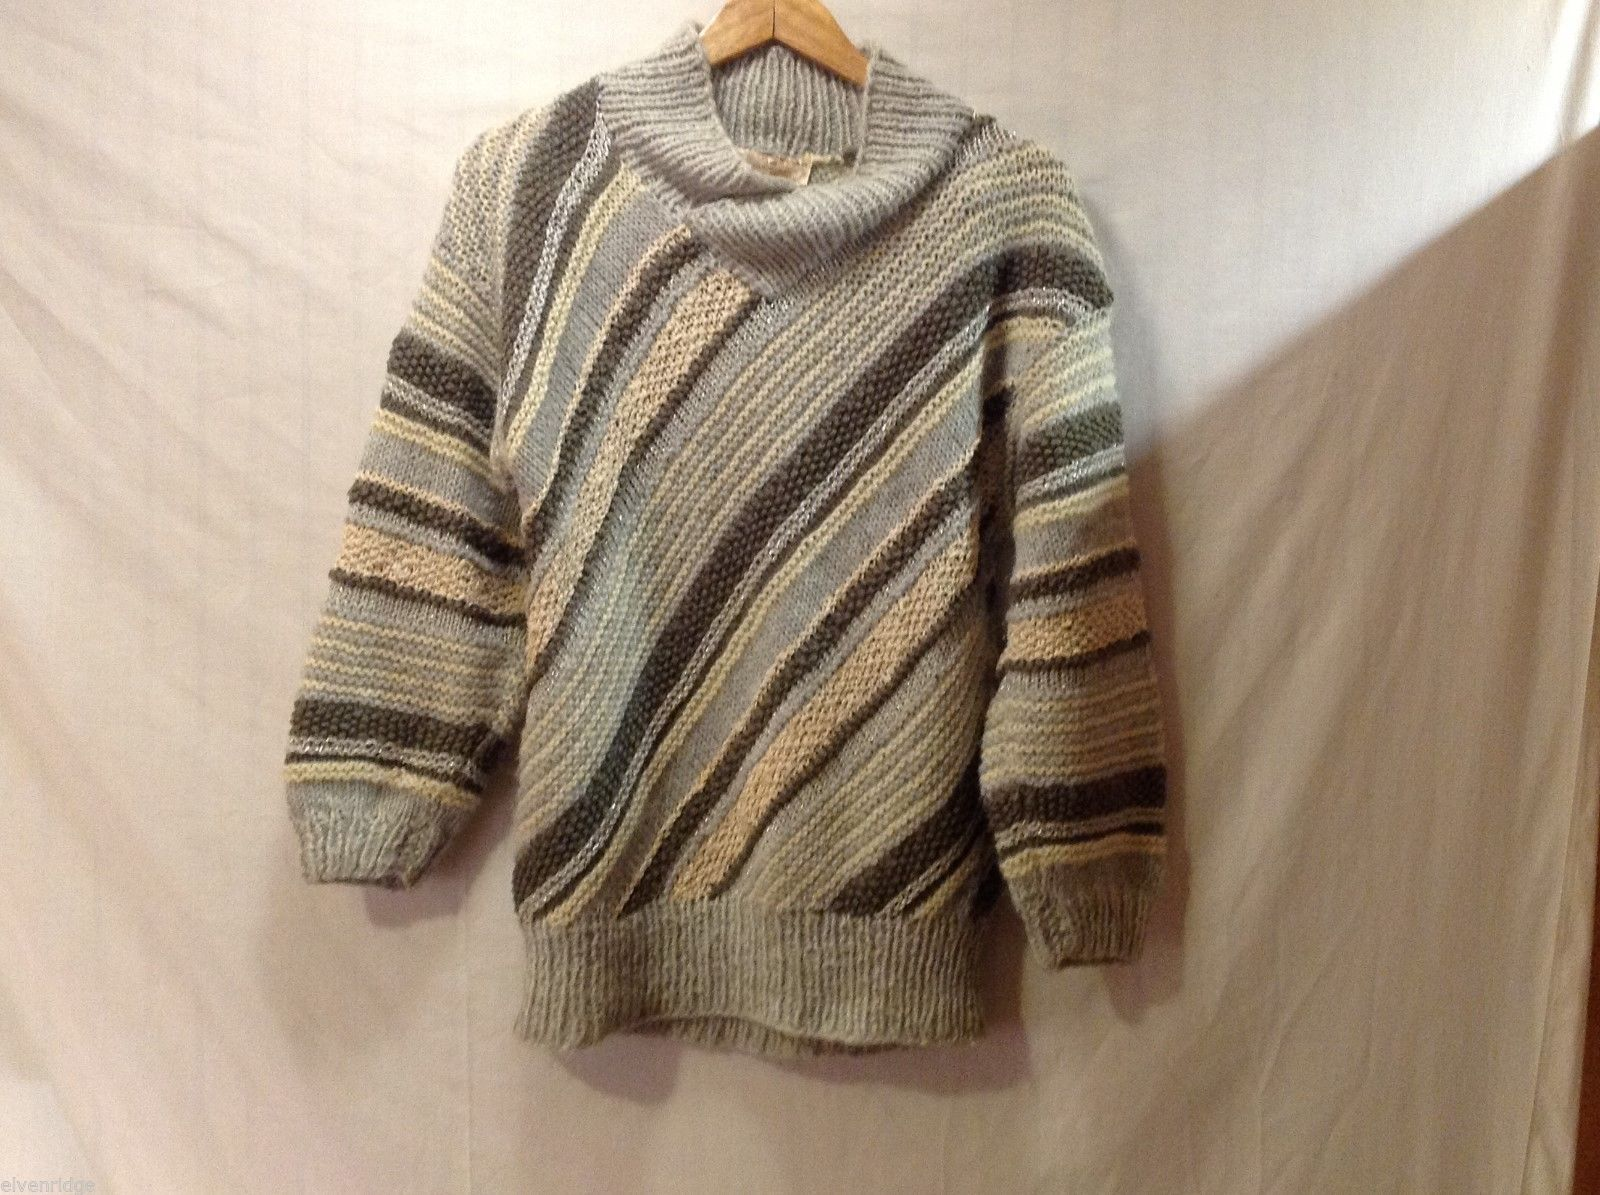 Womens Tuula BJork Gray and Cream Sweater, See Measurements for Size